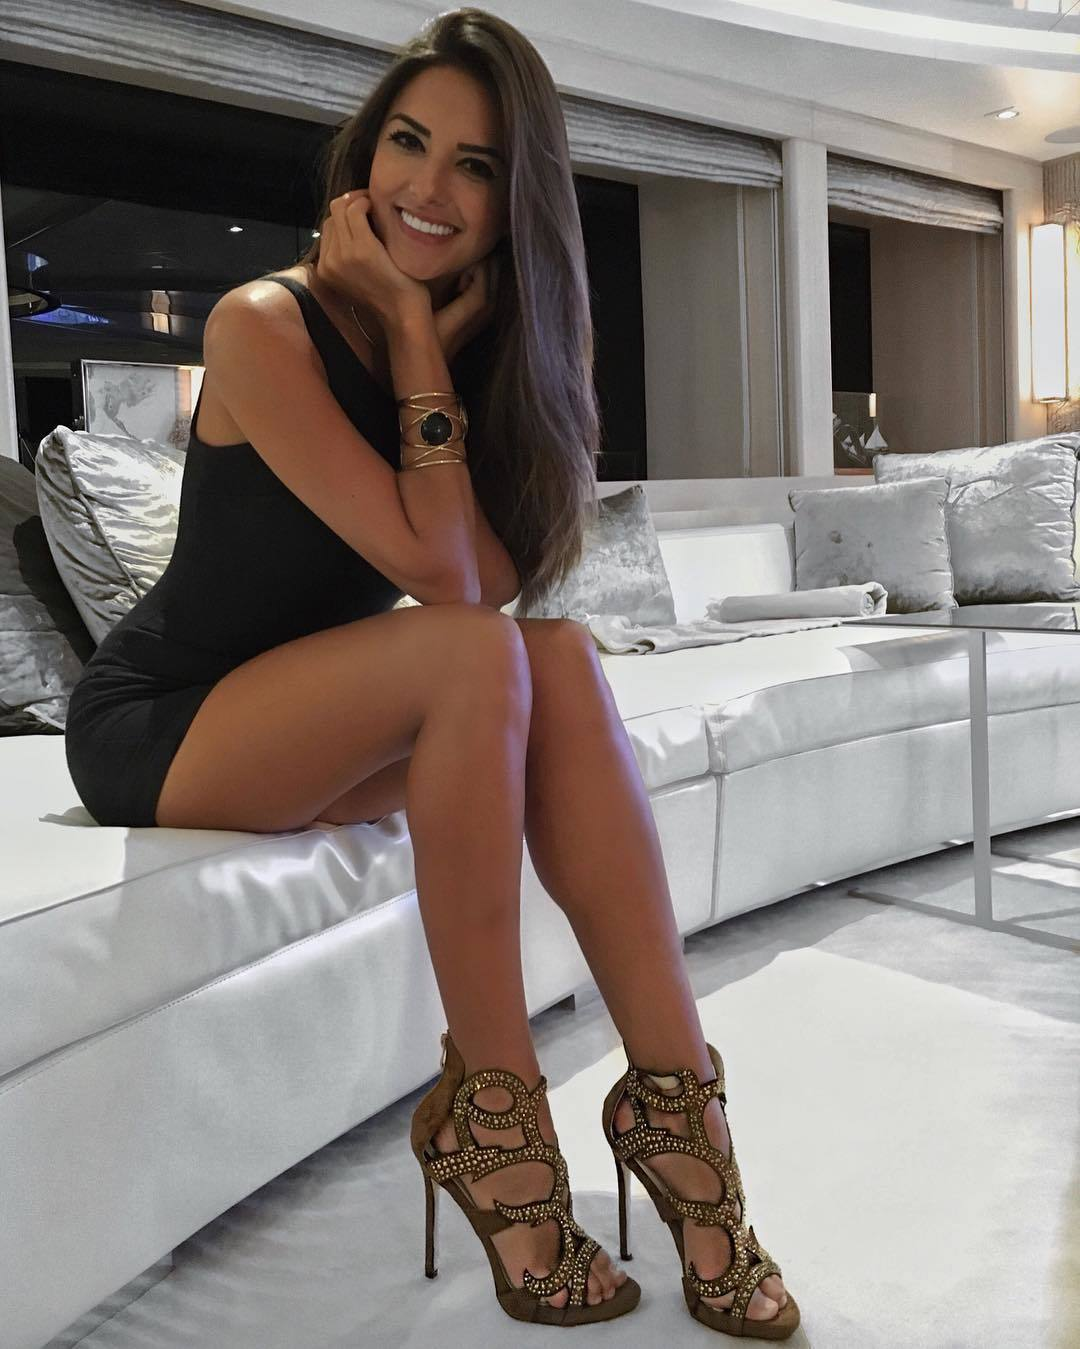 Fake Couch Auditions: Caroline Chafauzer's Feet